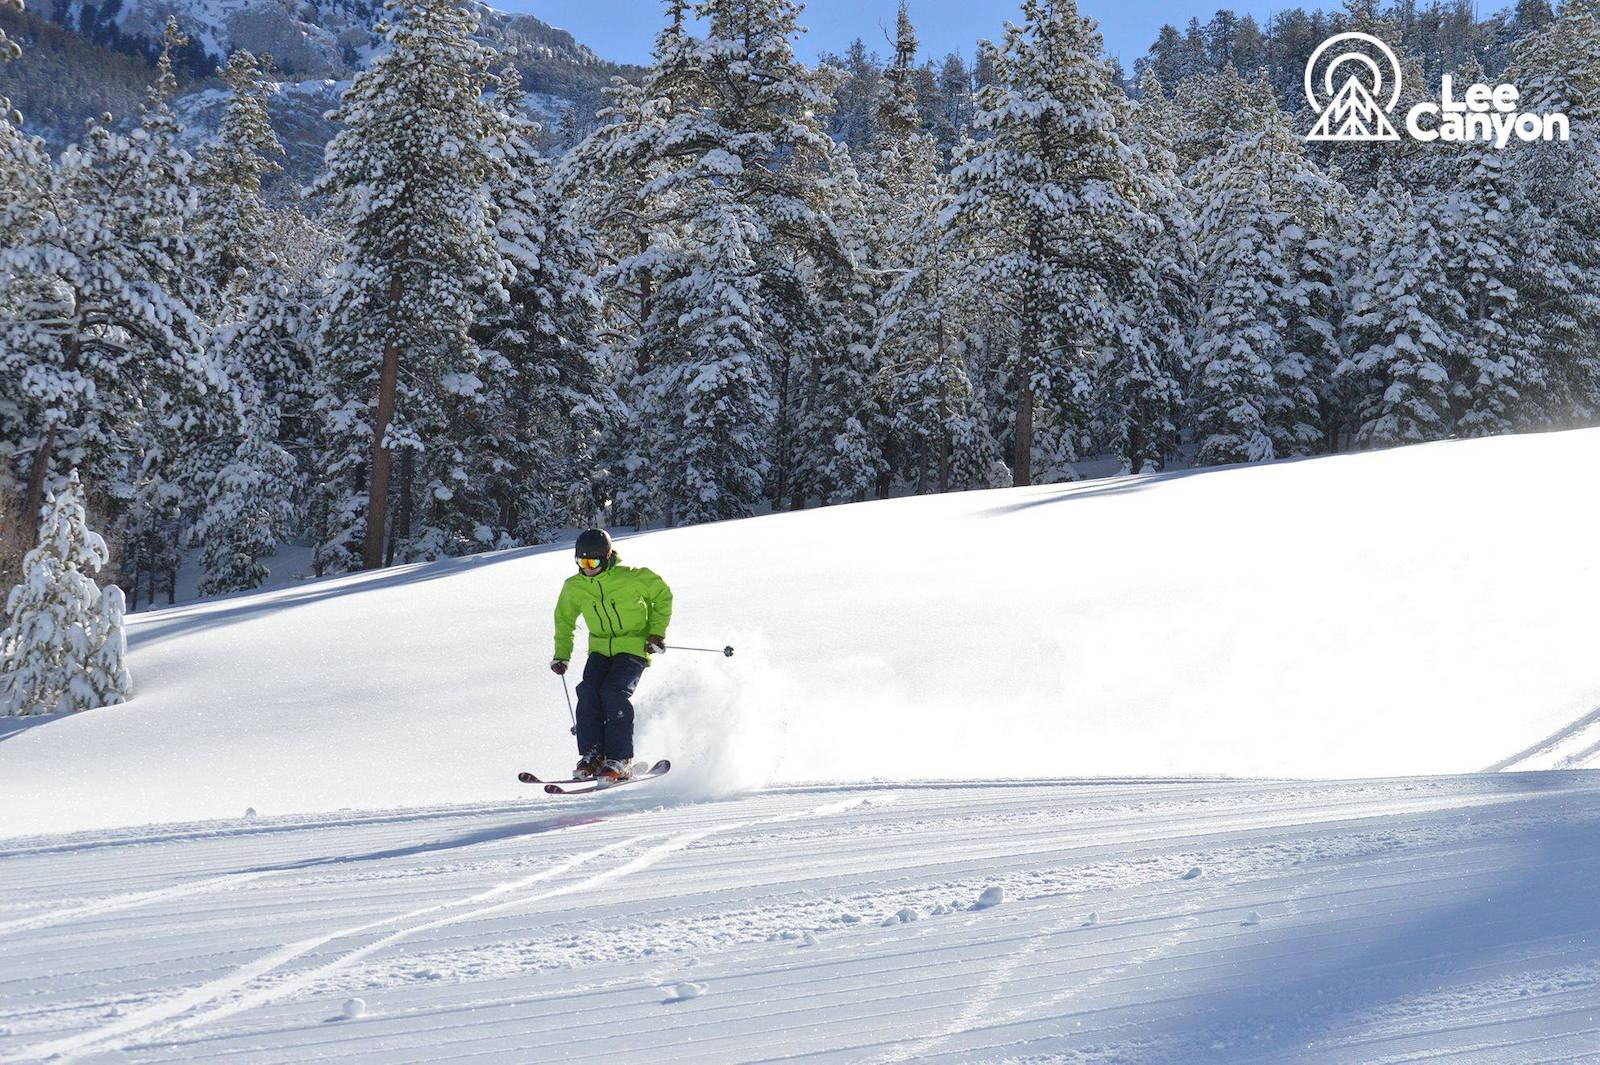 Image of a skier in a lime green coat going down the slopes at Lee Canyon in Las Vegas